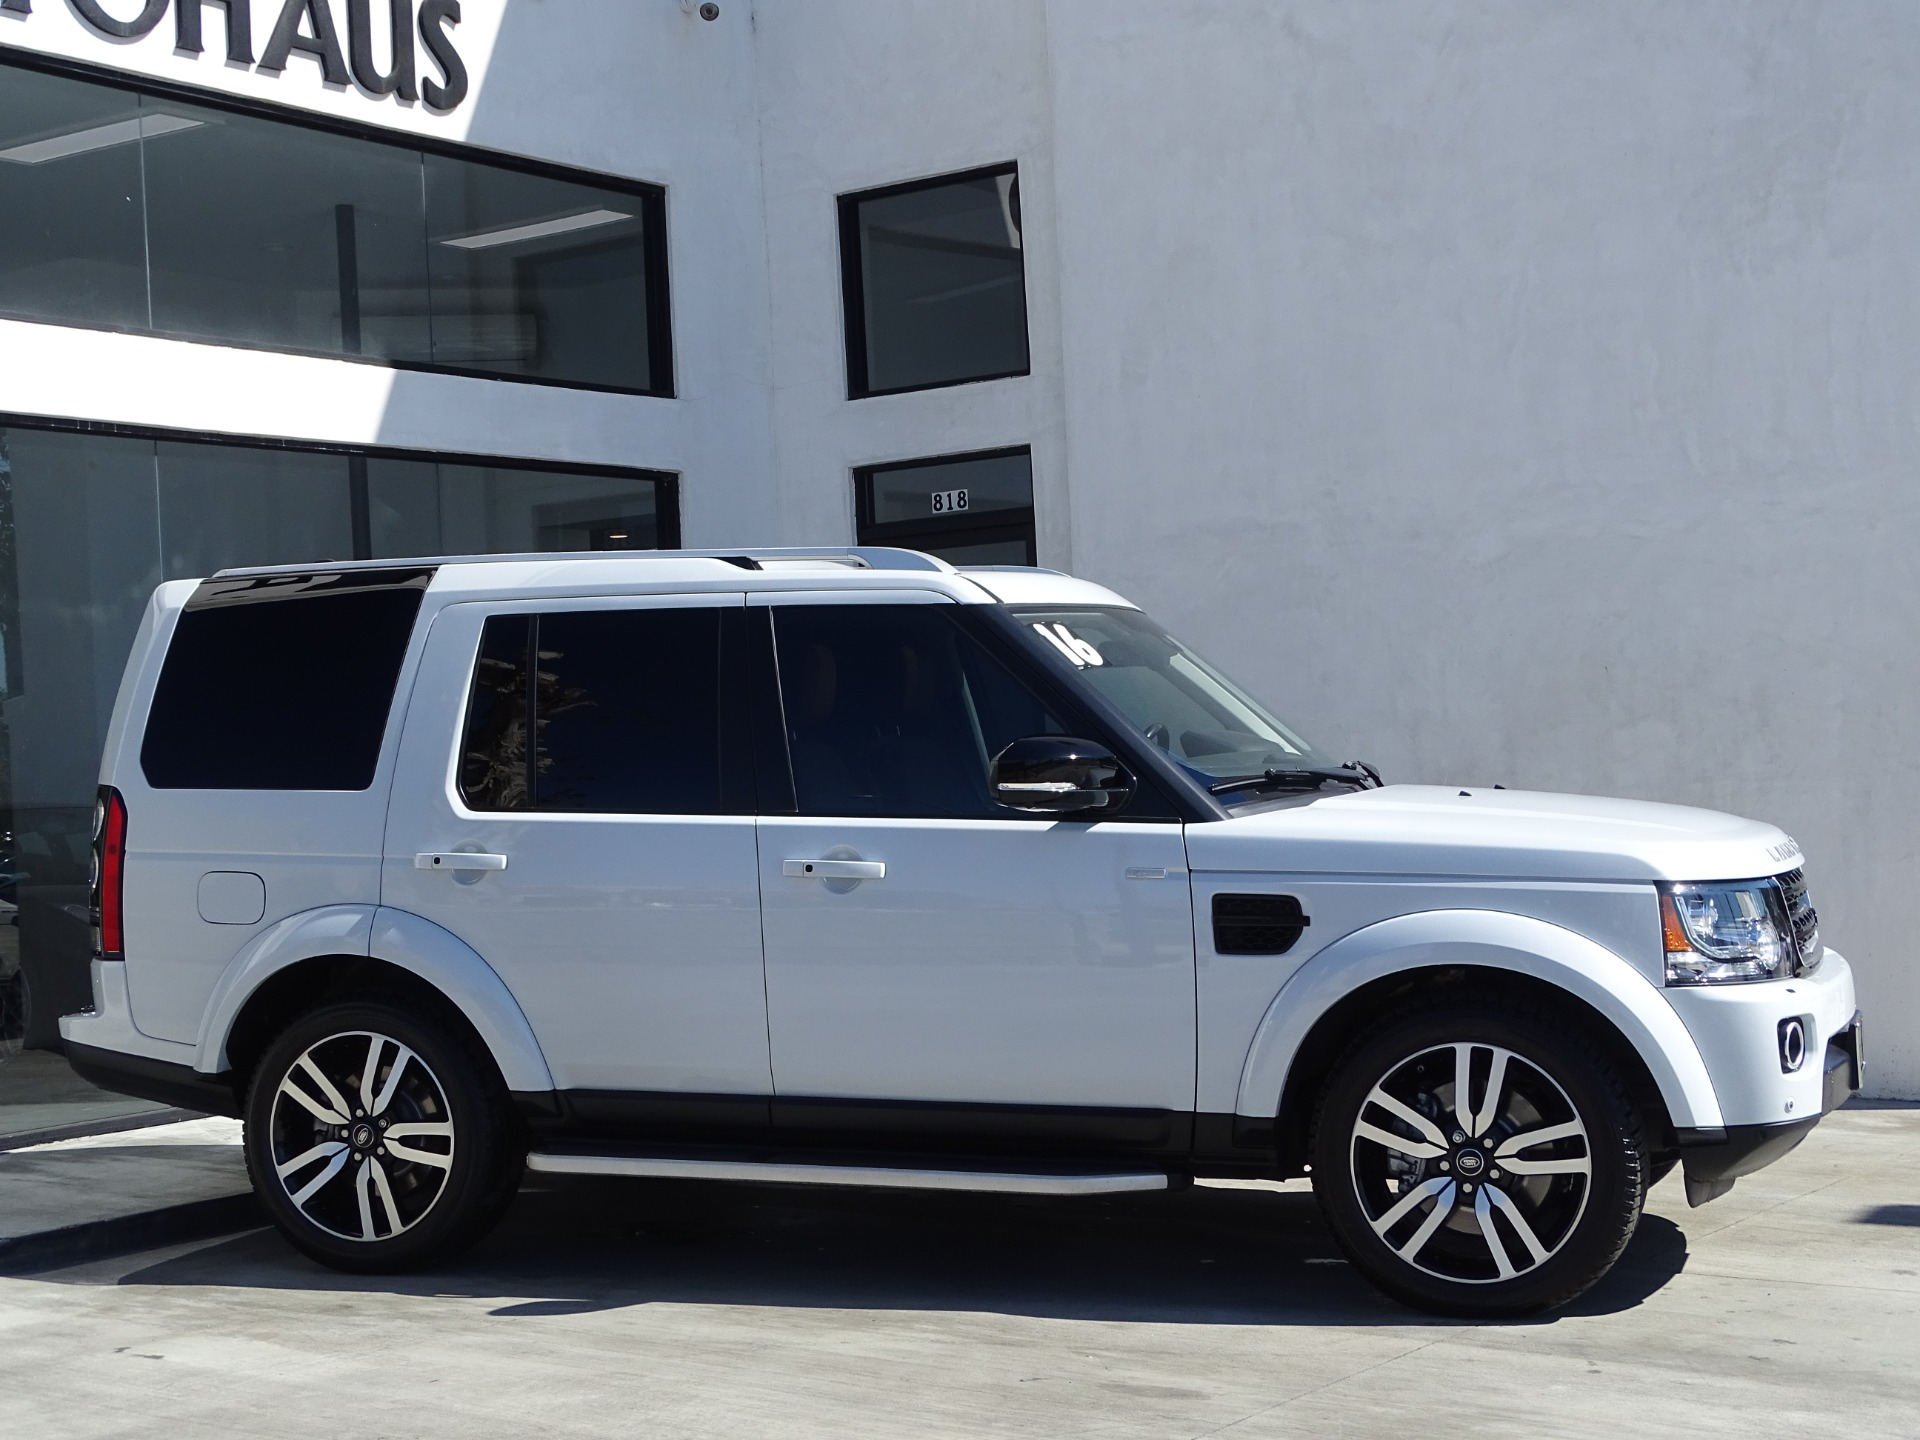 Land Rover Dealer Near Me >> 2016 Land Rover LR4 HSE LUX *** LANDMARK EDITION *** Stock ...